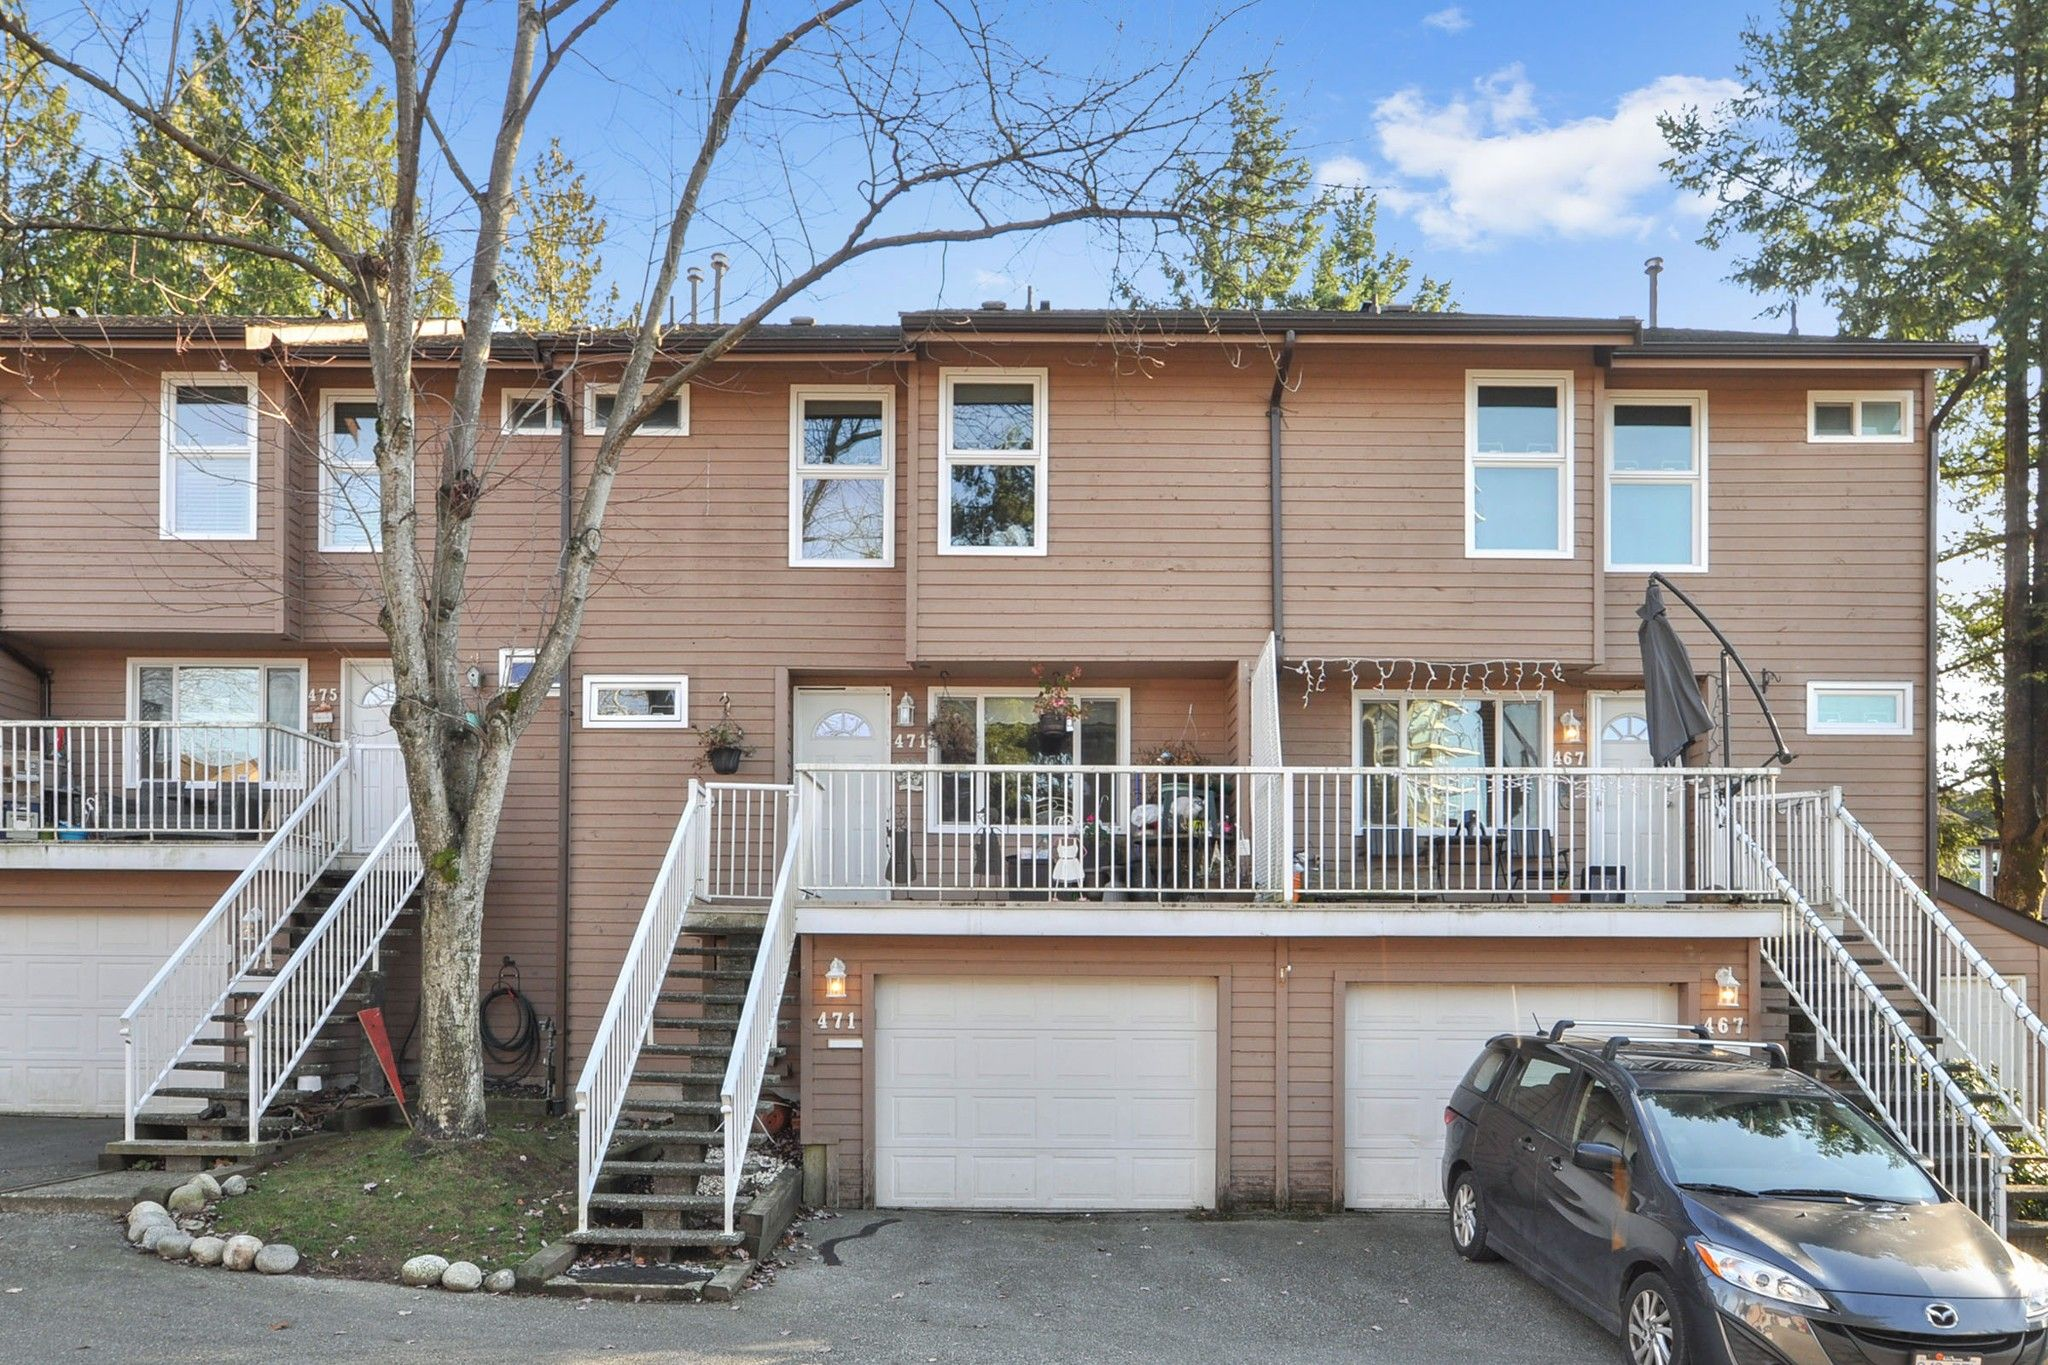 """Main Photo: 471 LEHMAN Place in Port Moody: North Shore Pt Moody Townhouse for sale in """"EAGLE POINT"""" : MLS®# R2422434"""